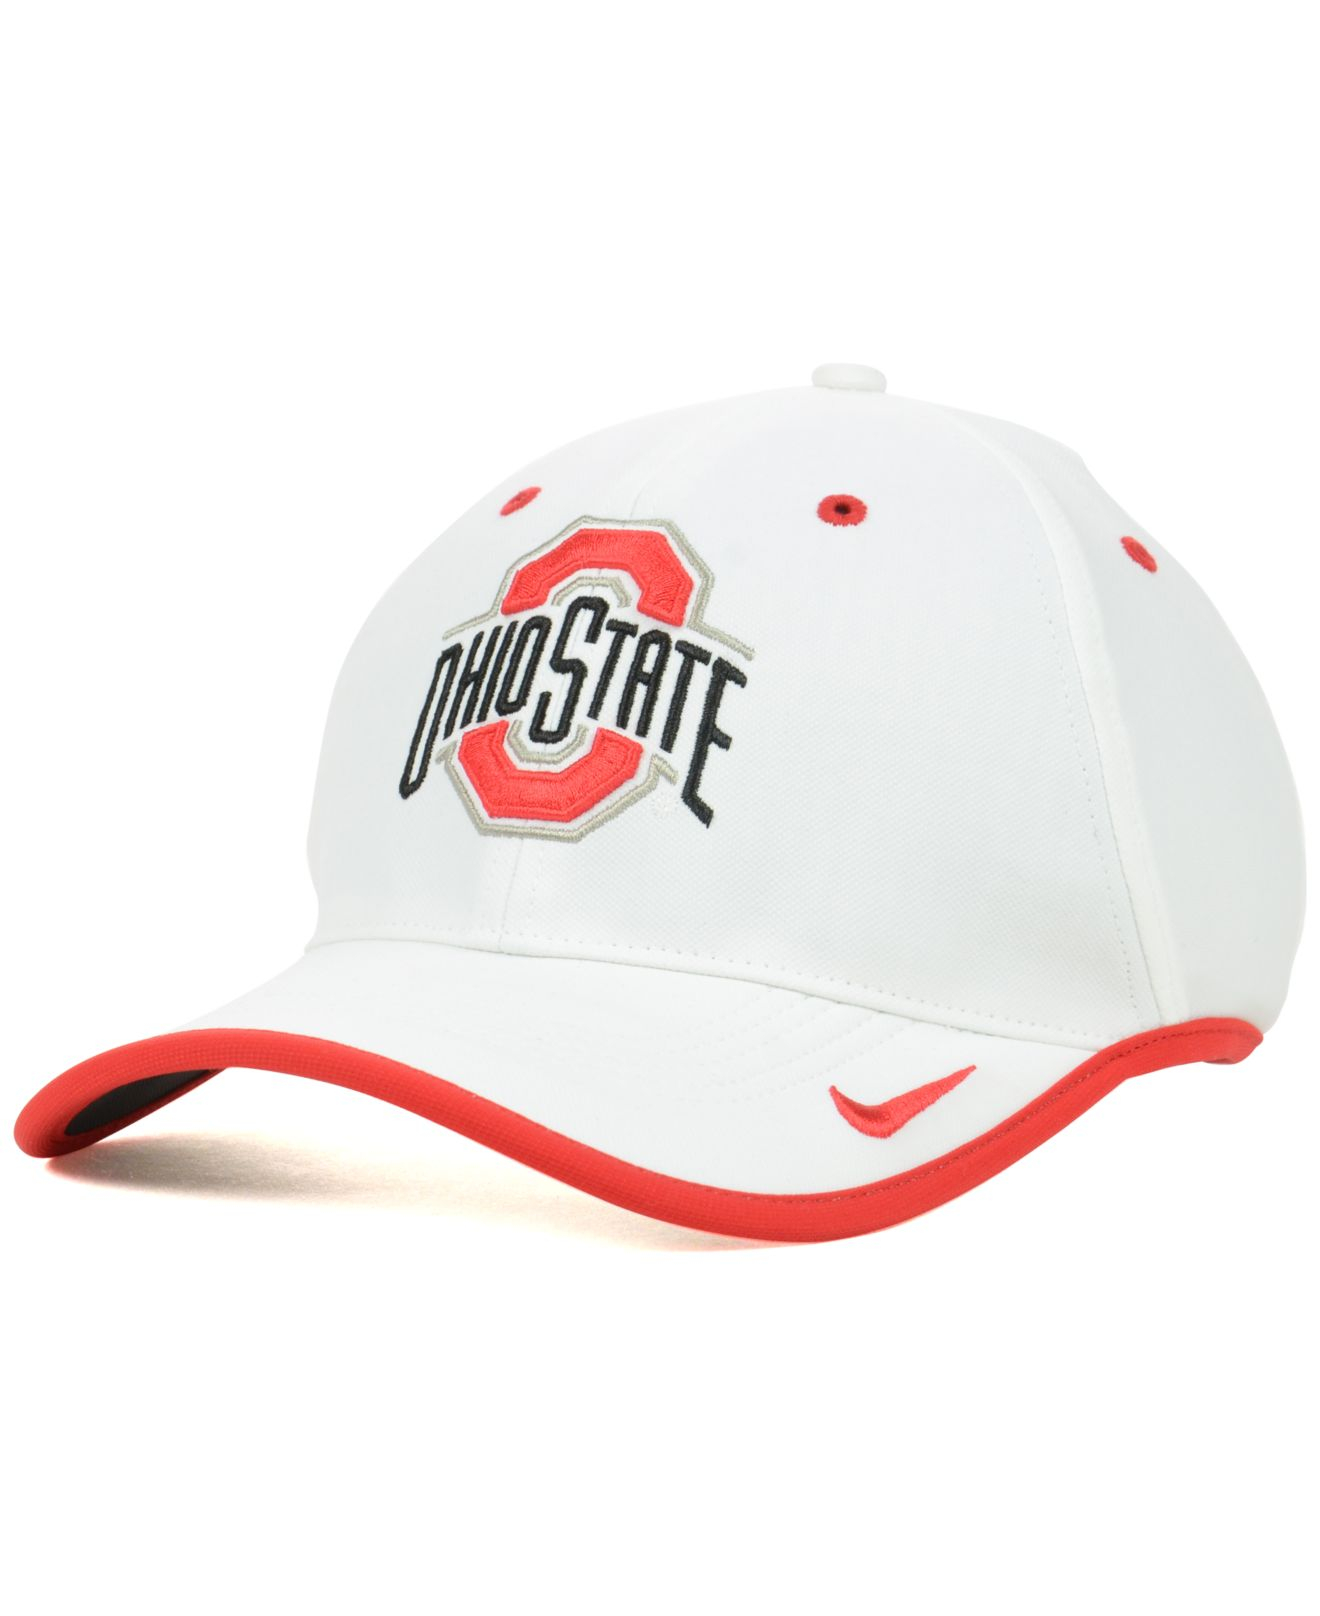 info for 79d7b 157a5 50% off lyst nike ohio state buckeyes coaches dri fit cap in orange for men